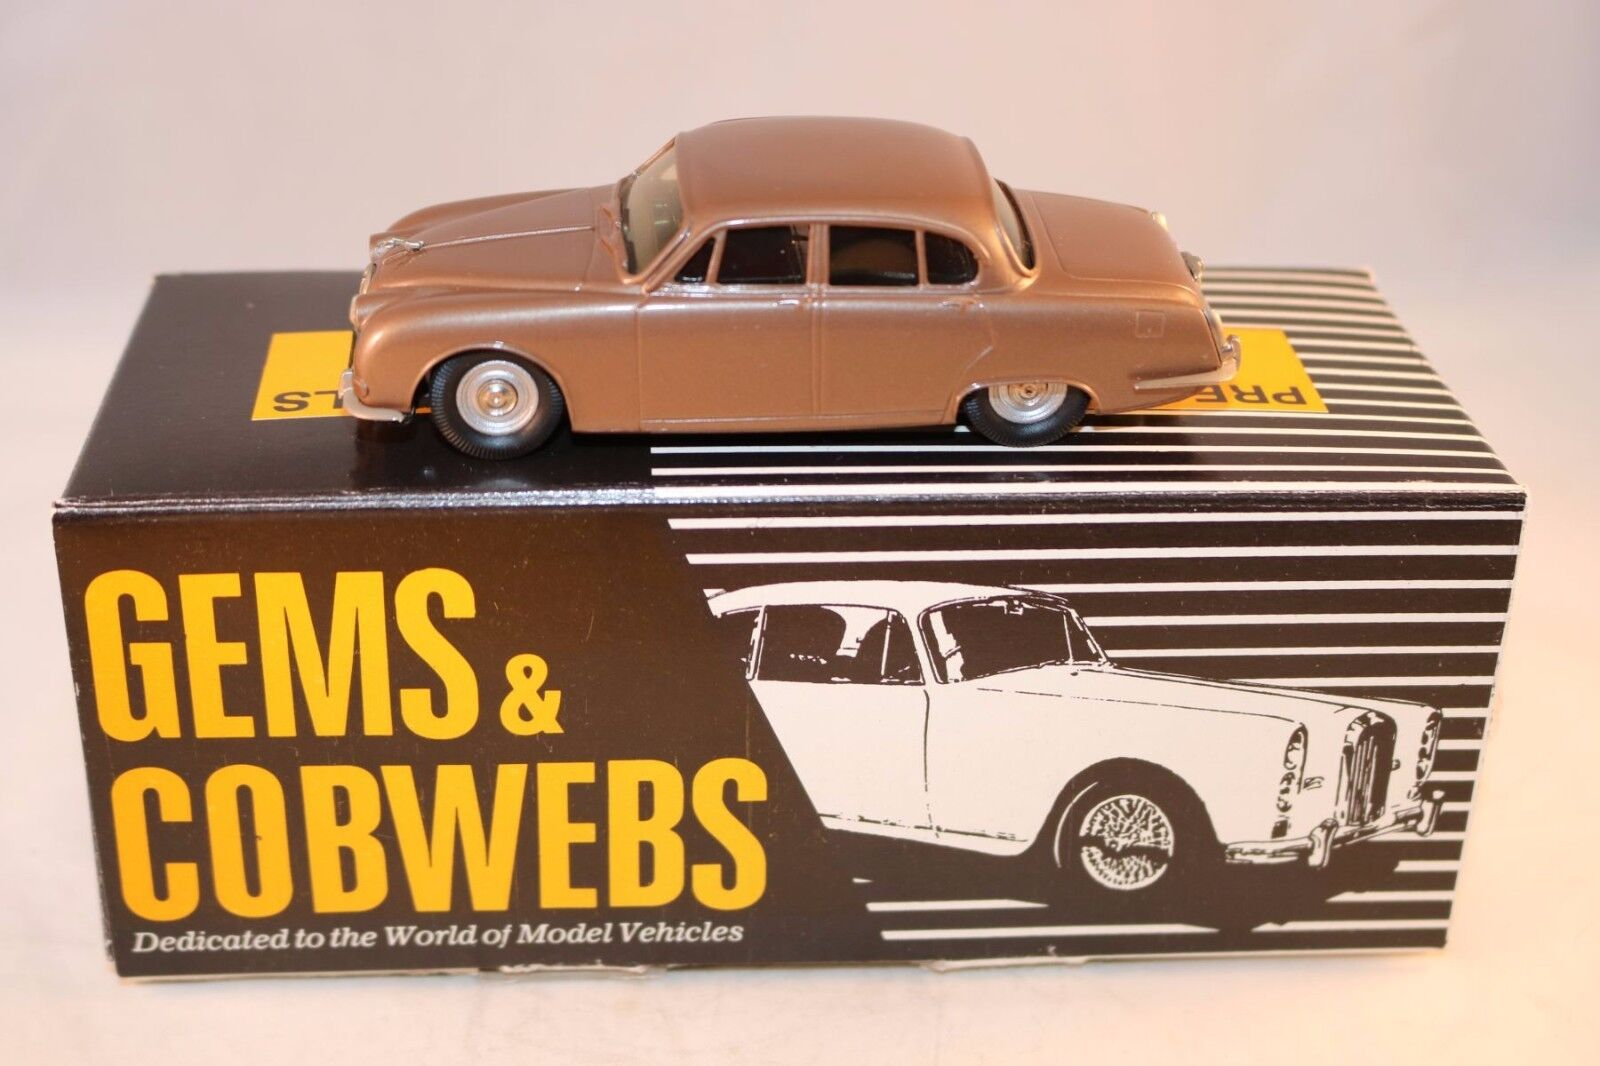 Gembs & Cobwebs G.C. 9 Jaguar S Type 1963 - 1970  Perfect mint in box